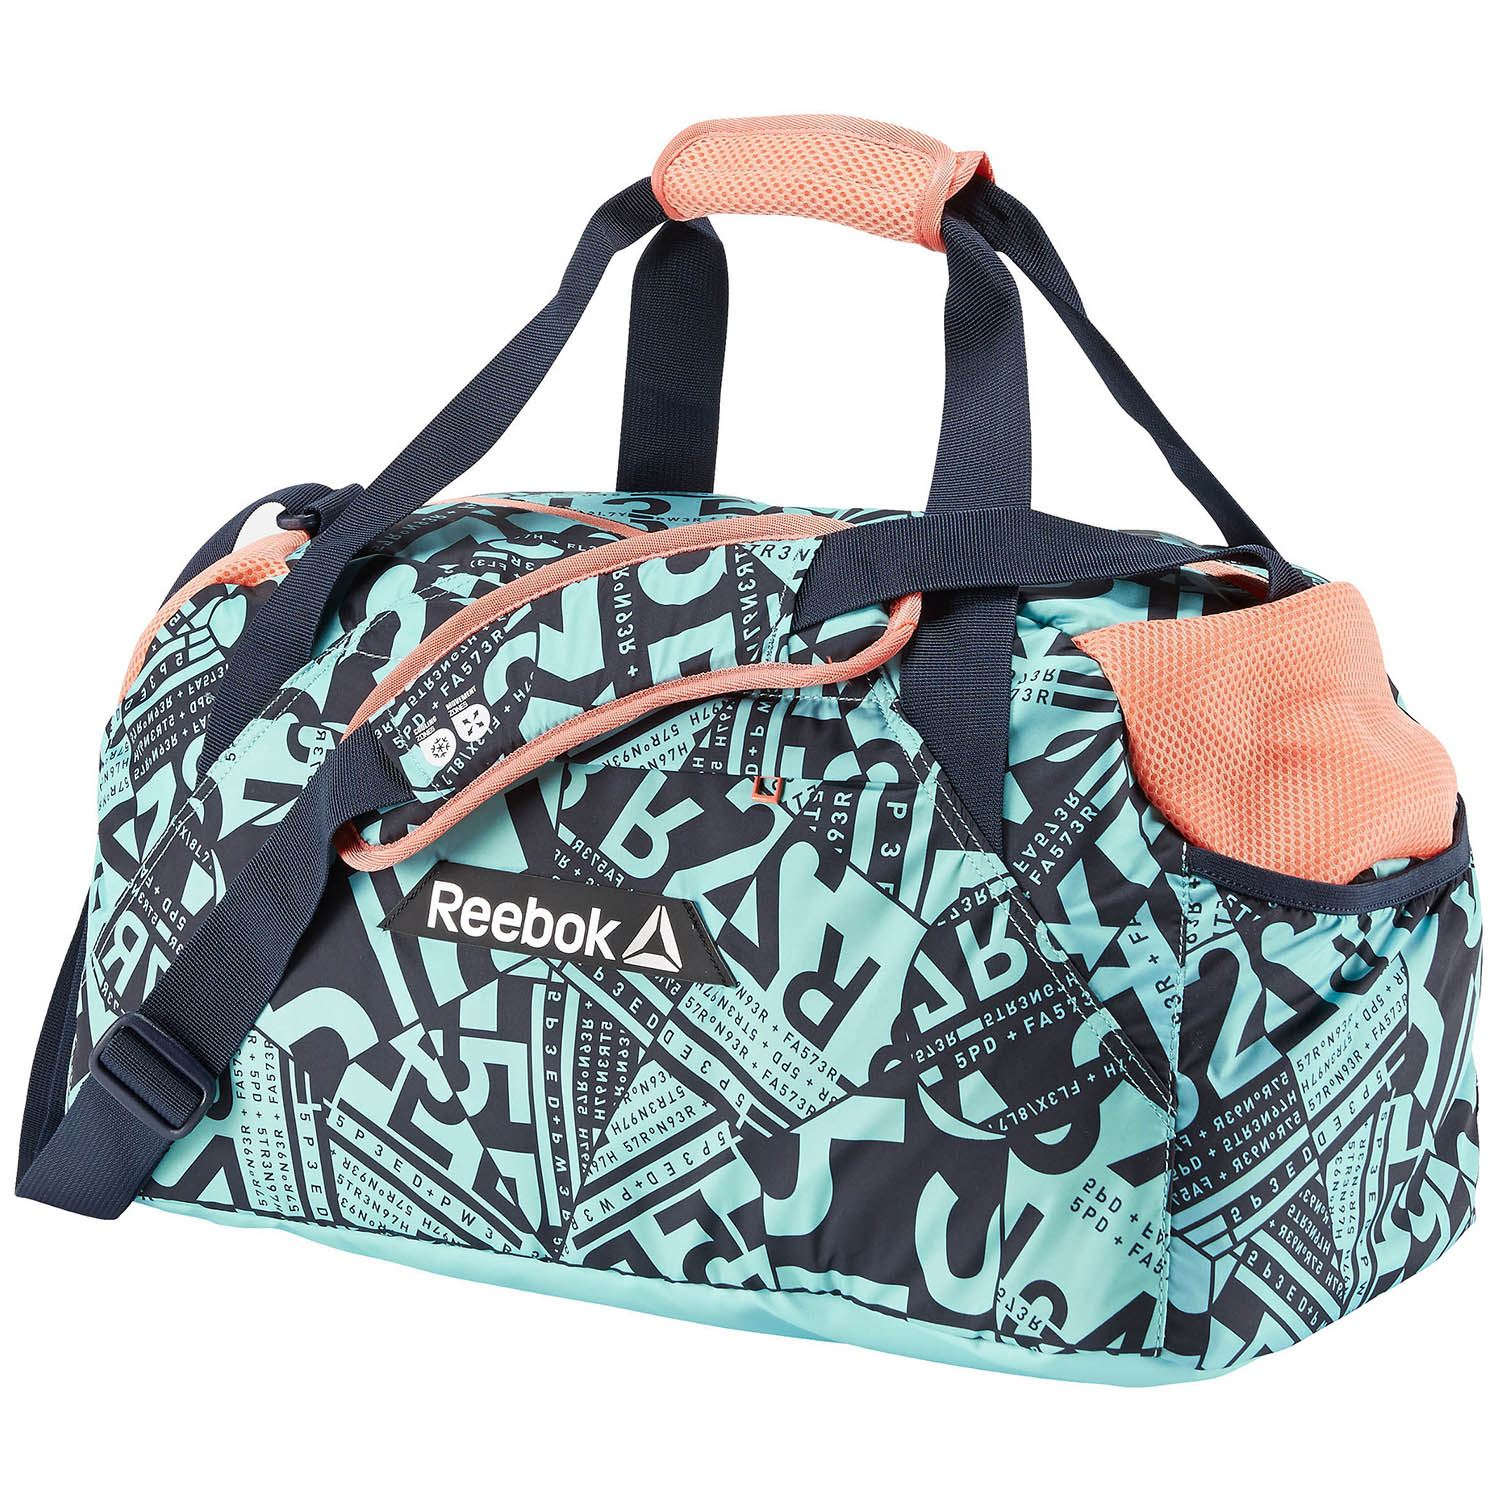 reebok os w grip fitness graphic bag gym sports training ladies womens toiletry ebay. Black Bedroom Furniture Sets. Home Design Ideas